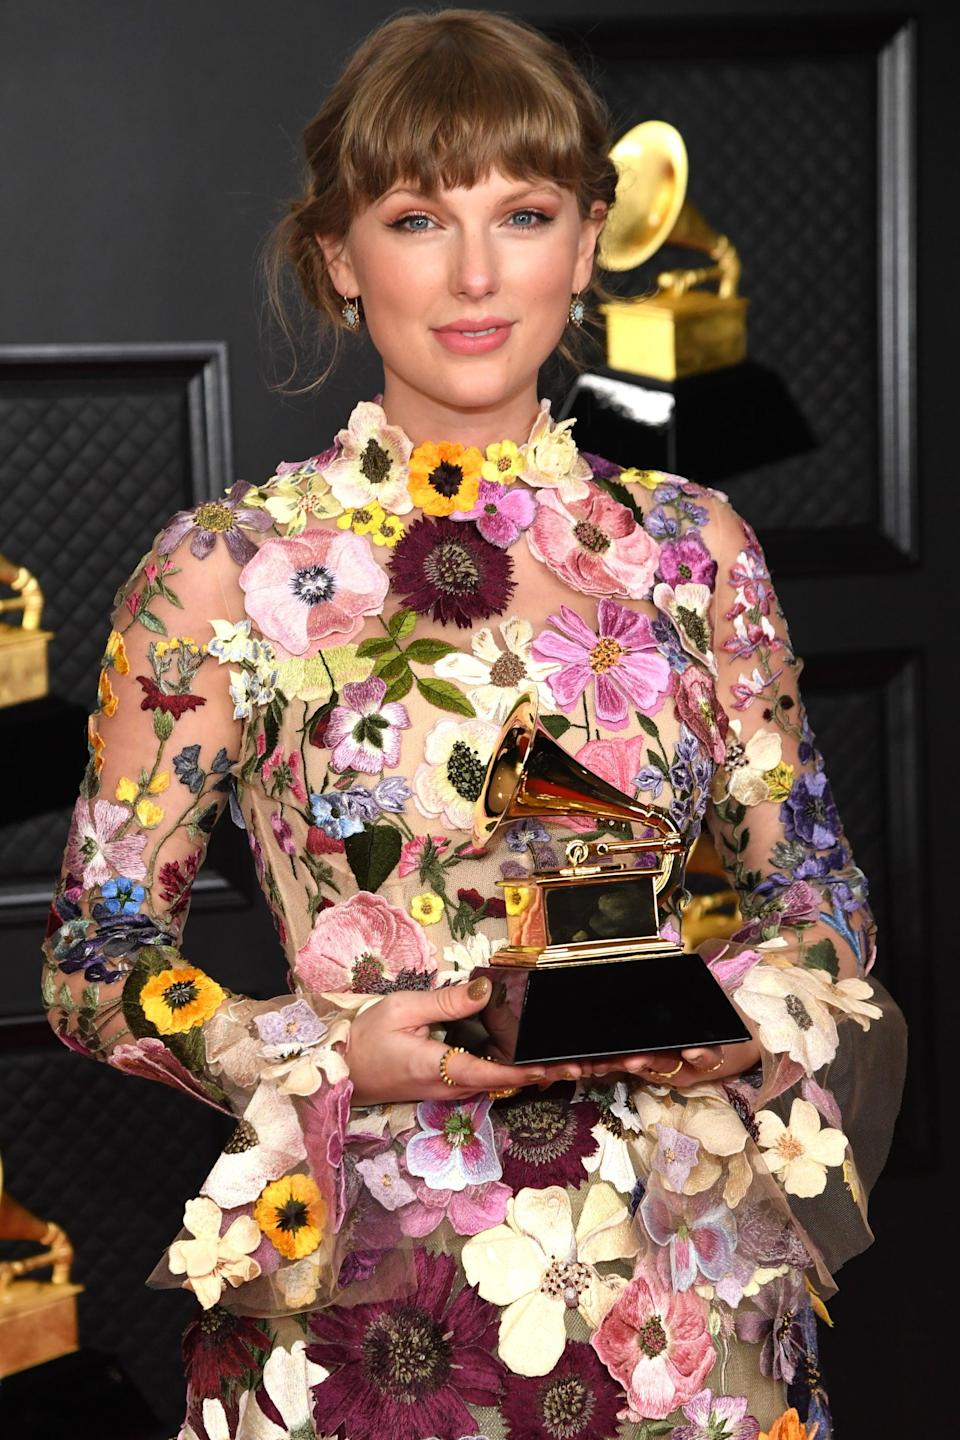 """<p><strong>Grammy nominations</strong>: 6</p> <ul> <li>Song of the year, """"Cardigan""""</li> <li>Best pop solo performance, """"Cardigan"""" </li> <li>Best pop duo/group performance, """"Exile"""" (featuring Bin Iver)</li> <li>Best pop vocal album, <strong>Folklore</strong></li> <li>Best song written for visual media, """"Beautiful Ghosts"""" from <strong>Cats</strong> </li> <li>Album of the year, <strong>Folklore</strong> </li> </ul> <p><strong>How many she won</strong>: 1; album of the year</p>"""